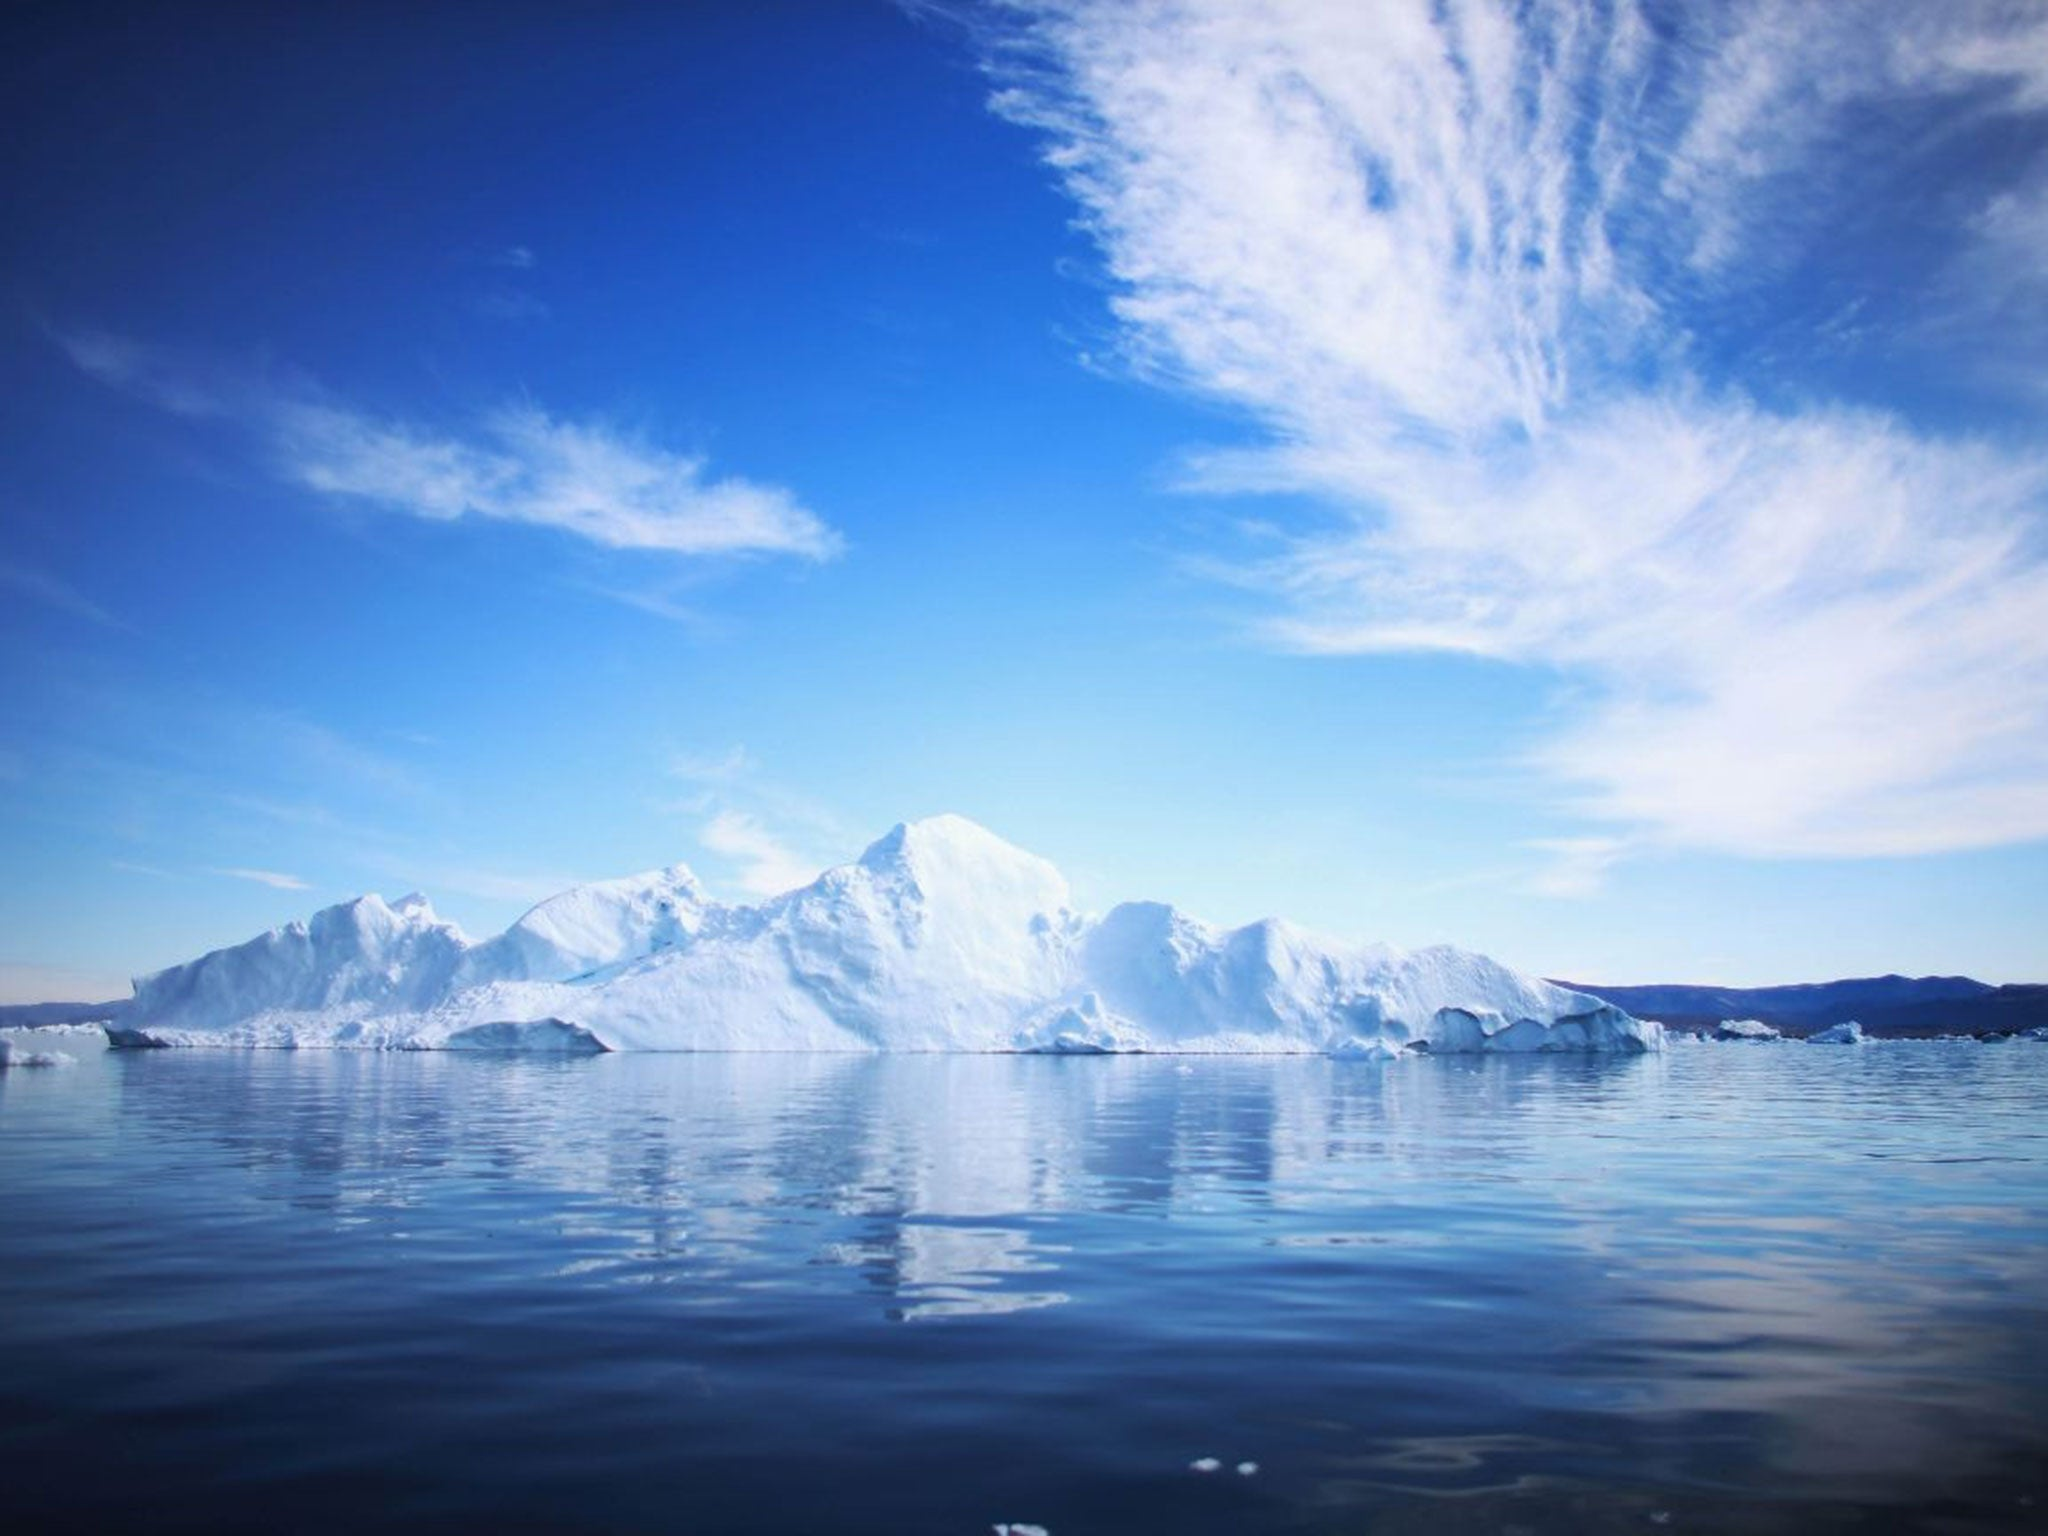 Melting ice sheets could raise sea levels almost half a metre in 80 years, say scientists